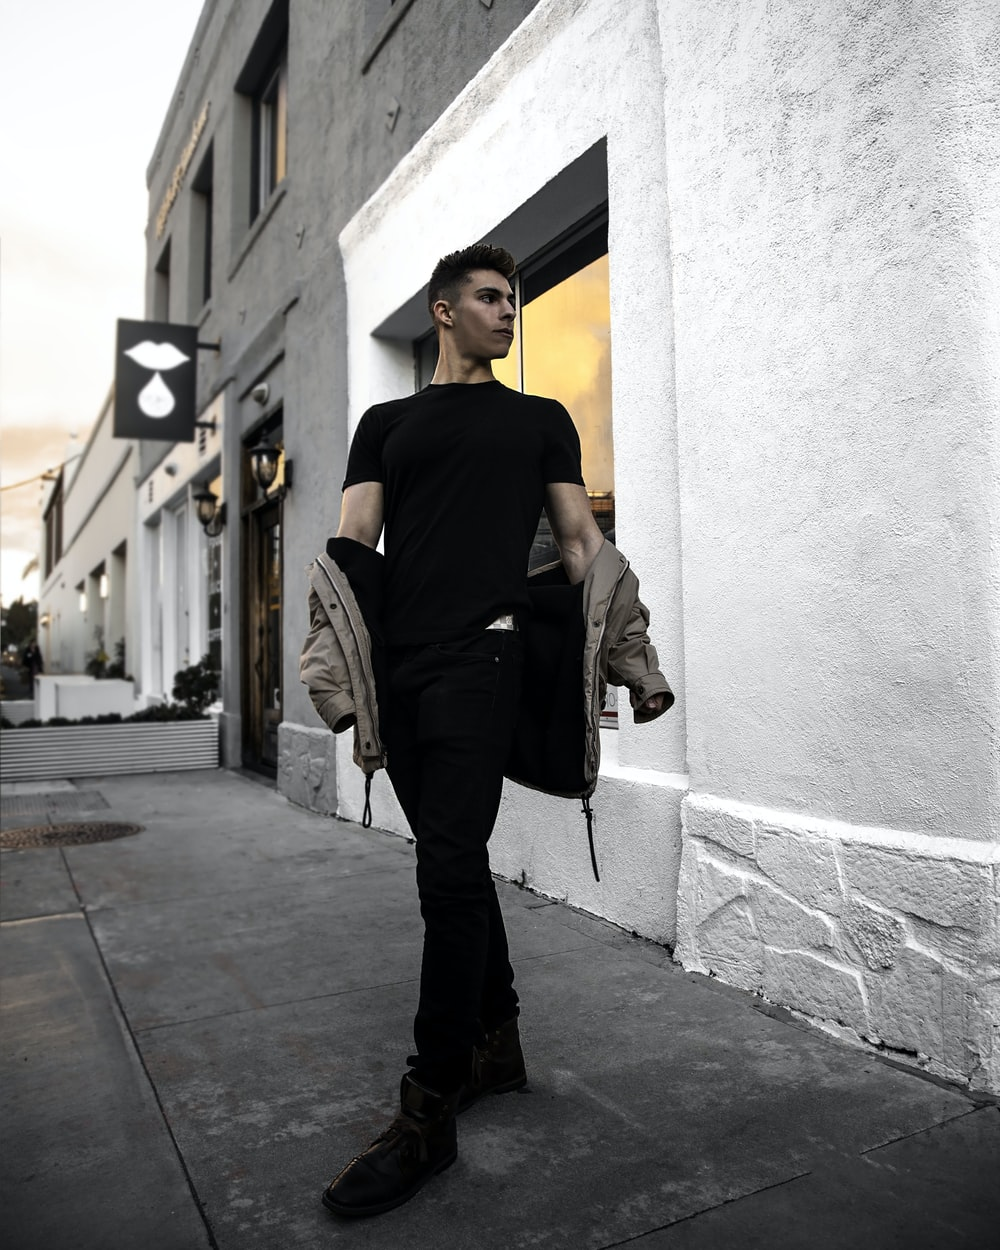 man in black shirt and gray pants leaning on wall